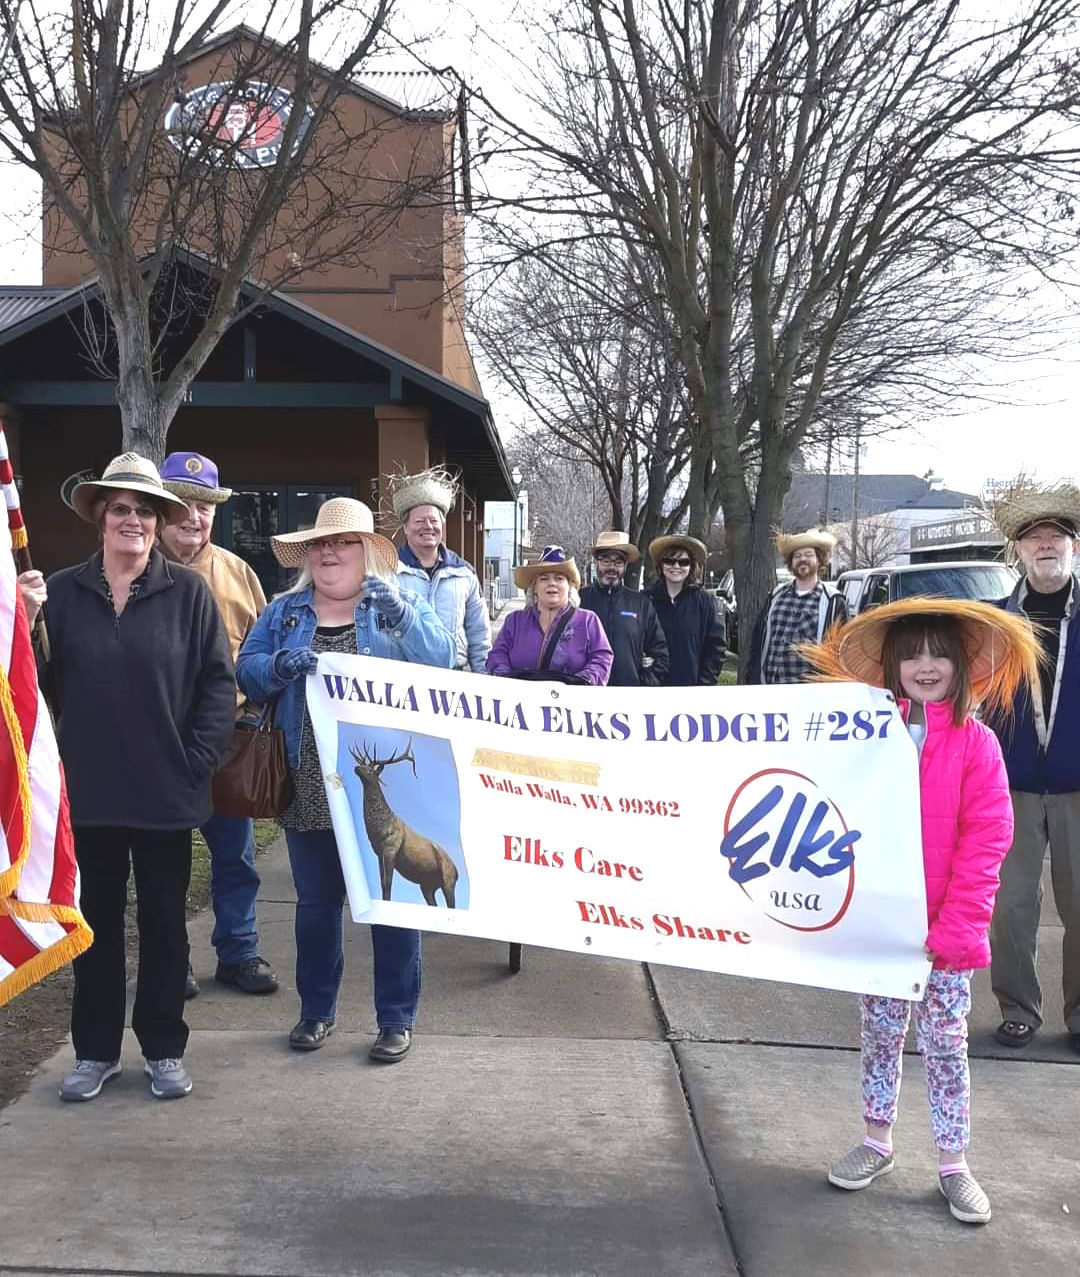 Elks Lodge straw hat this year